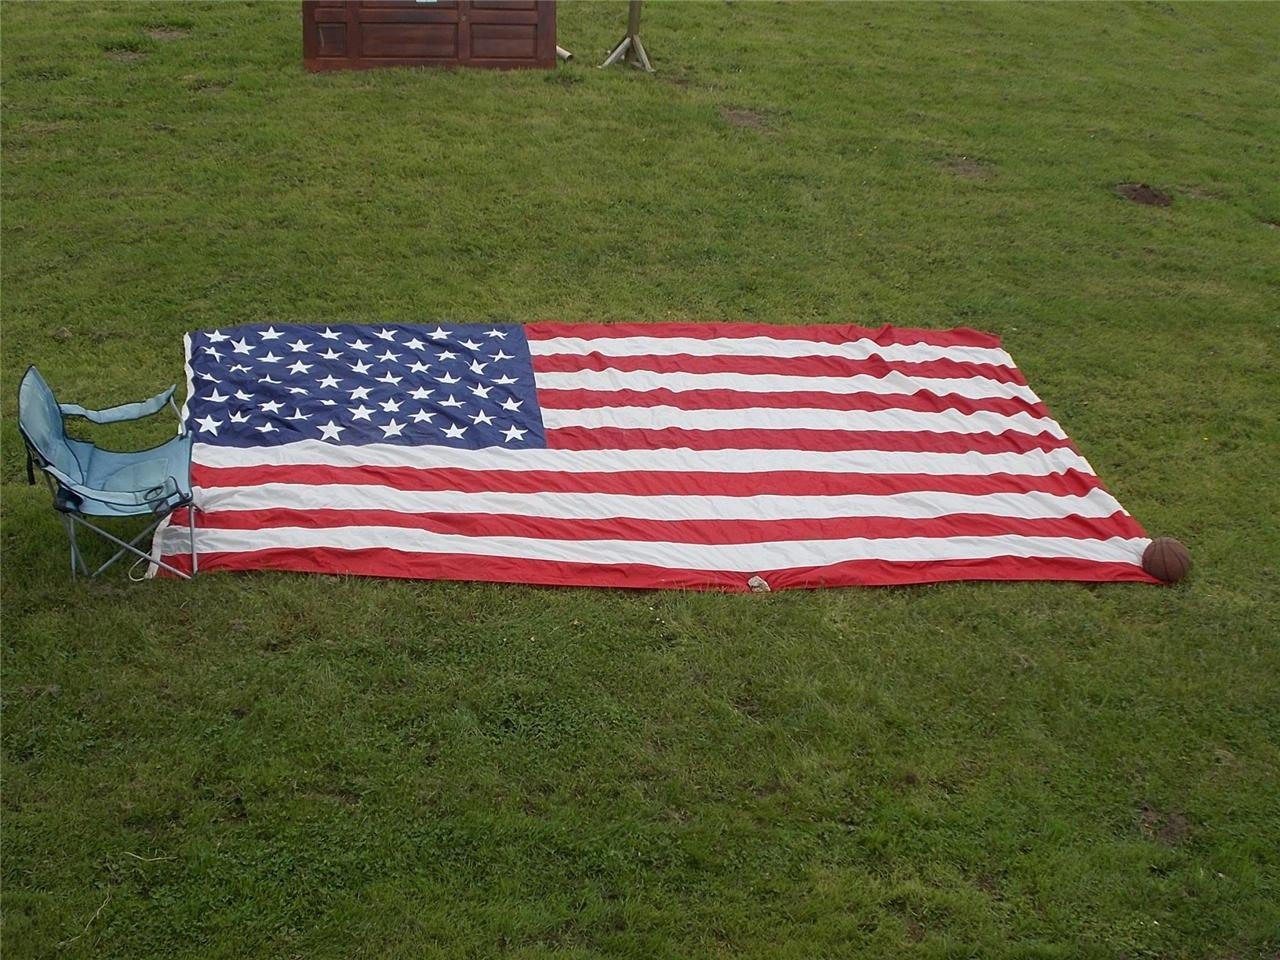 Huge-Flag-from-USS-ENTERPRISE-US-Navy-Aircraft-Carrier-Gulf-War-Naval-Militaria